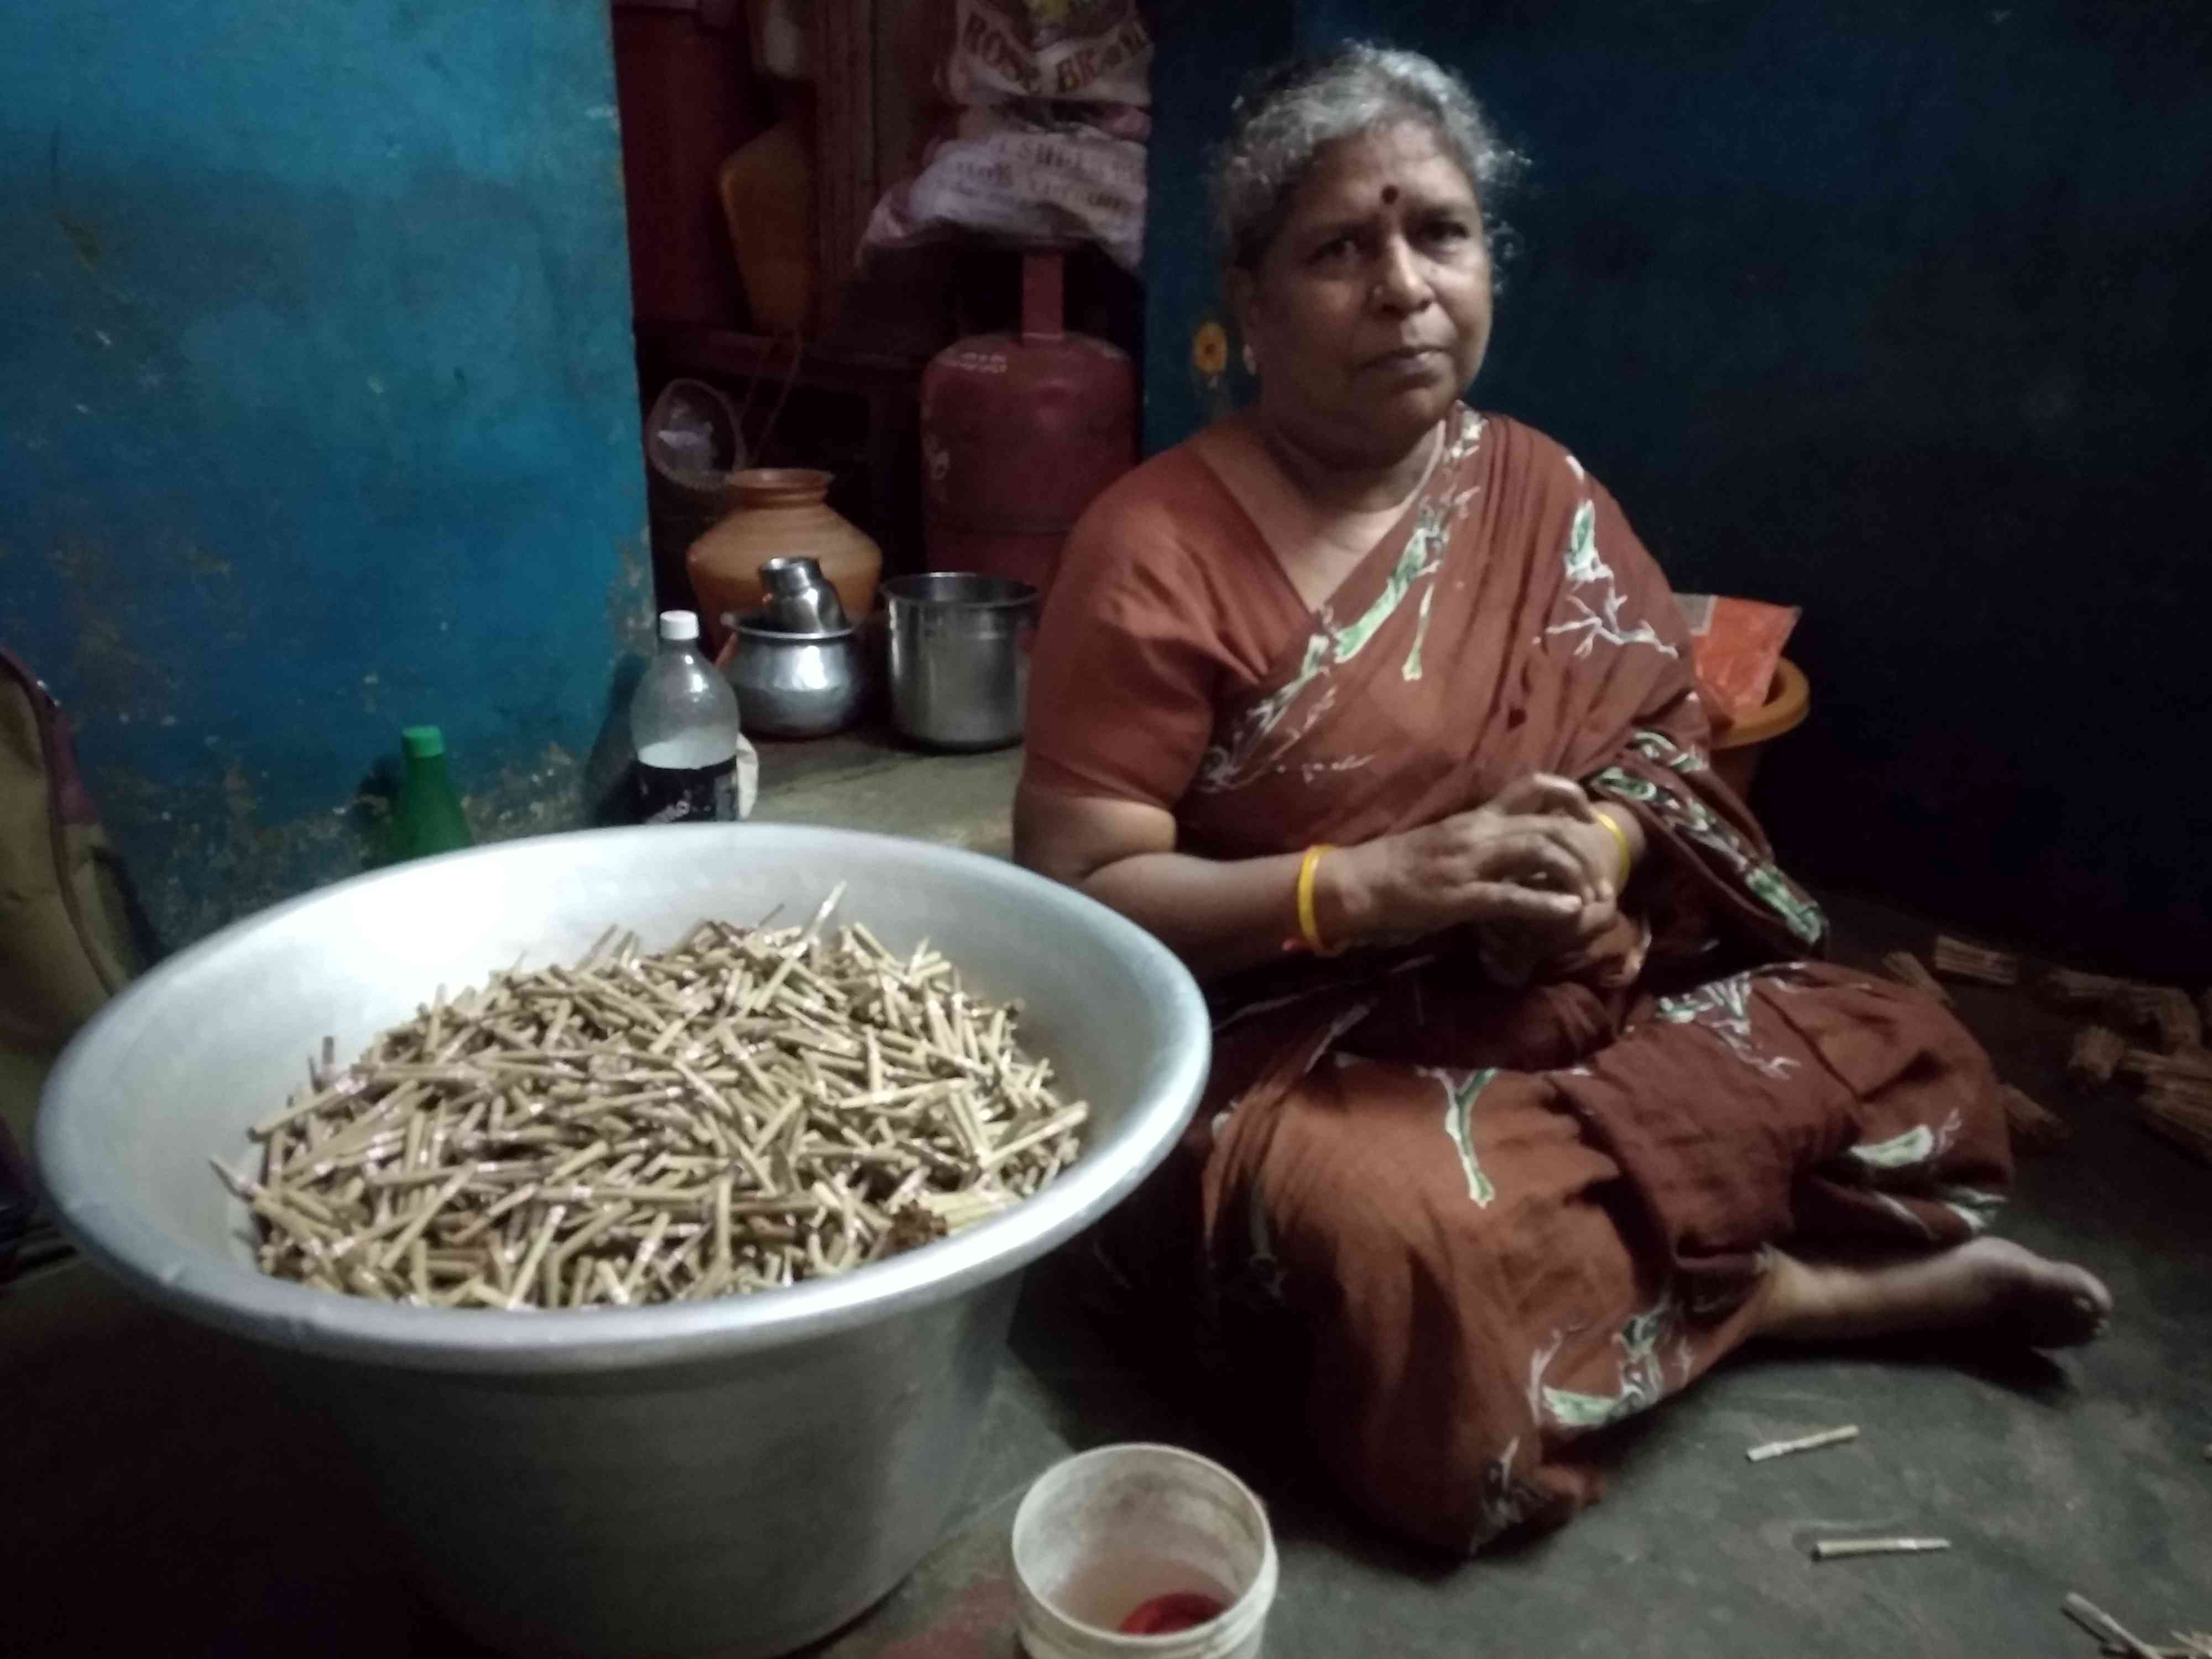 A Madhavi stick labels and bundles beedis at her home in Kaspa in Vellore in Tamil Nadu. Photo credit: S Senthalir